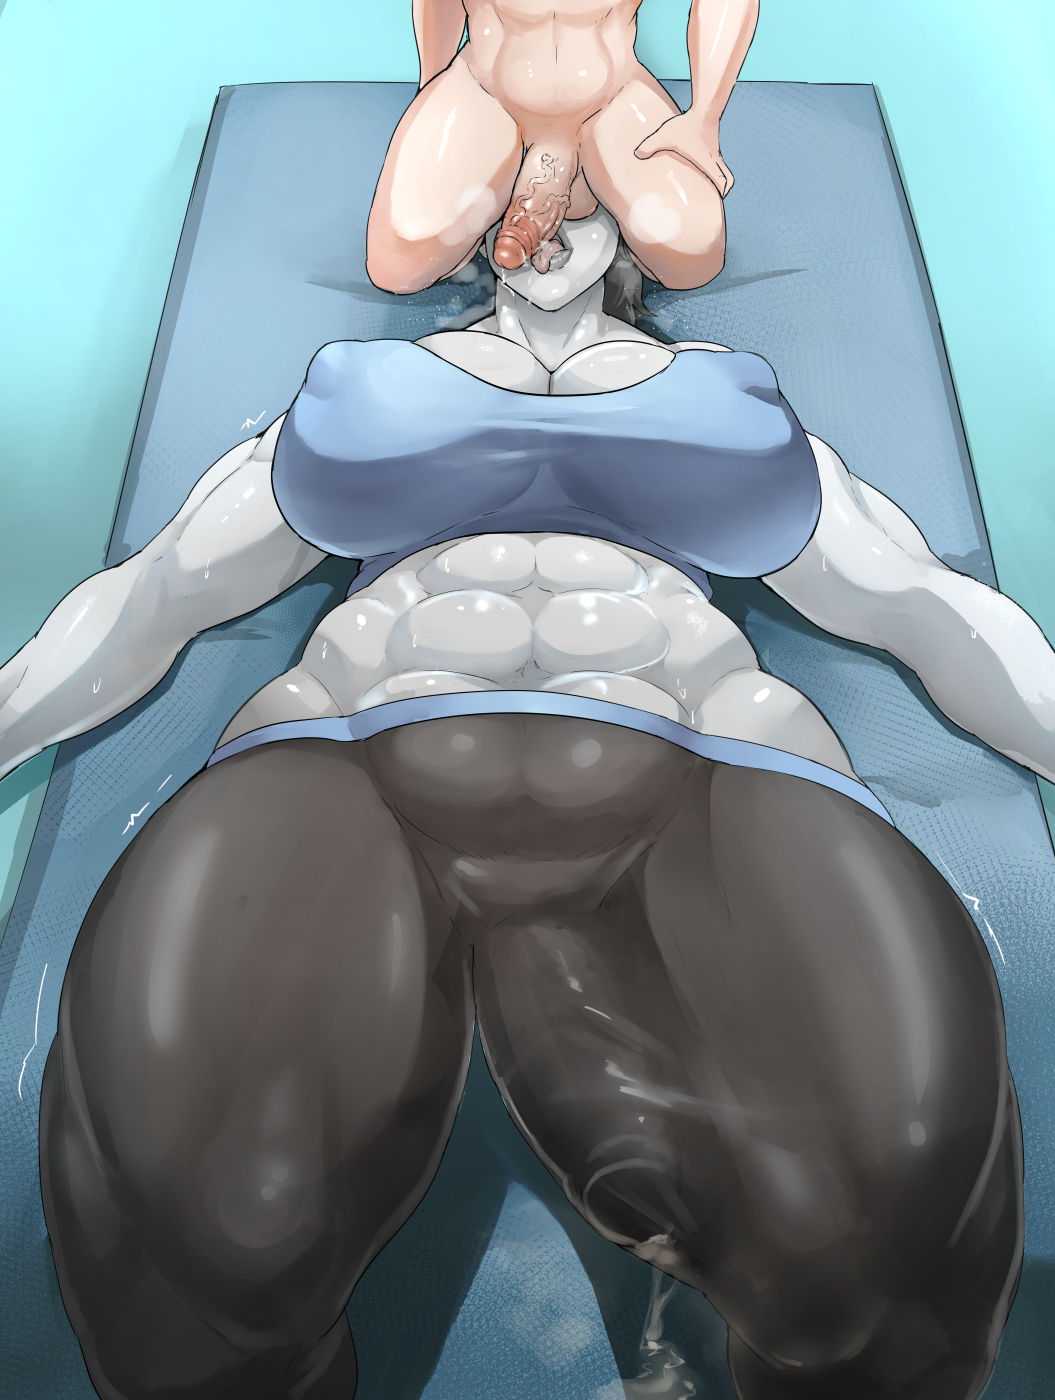 hentai fit trainer futa wii Is the hit or miss girl a trap